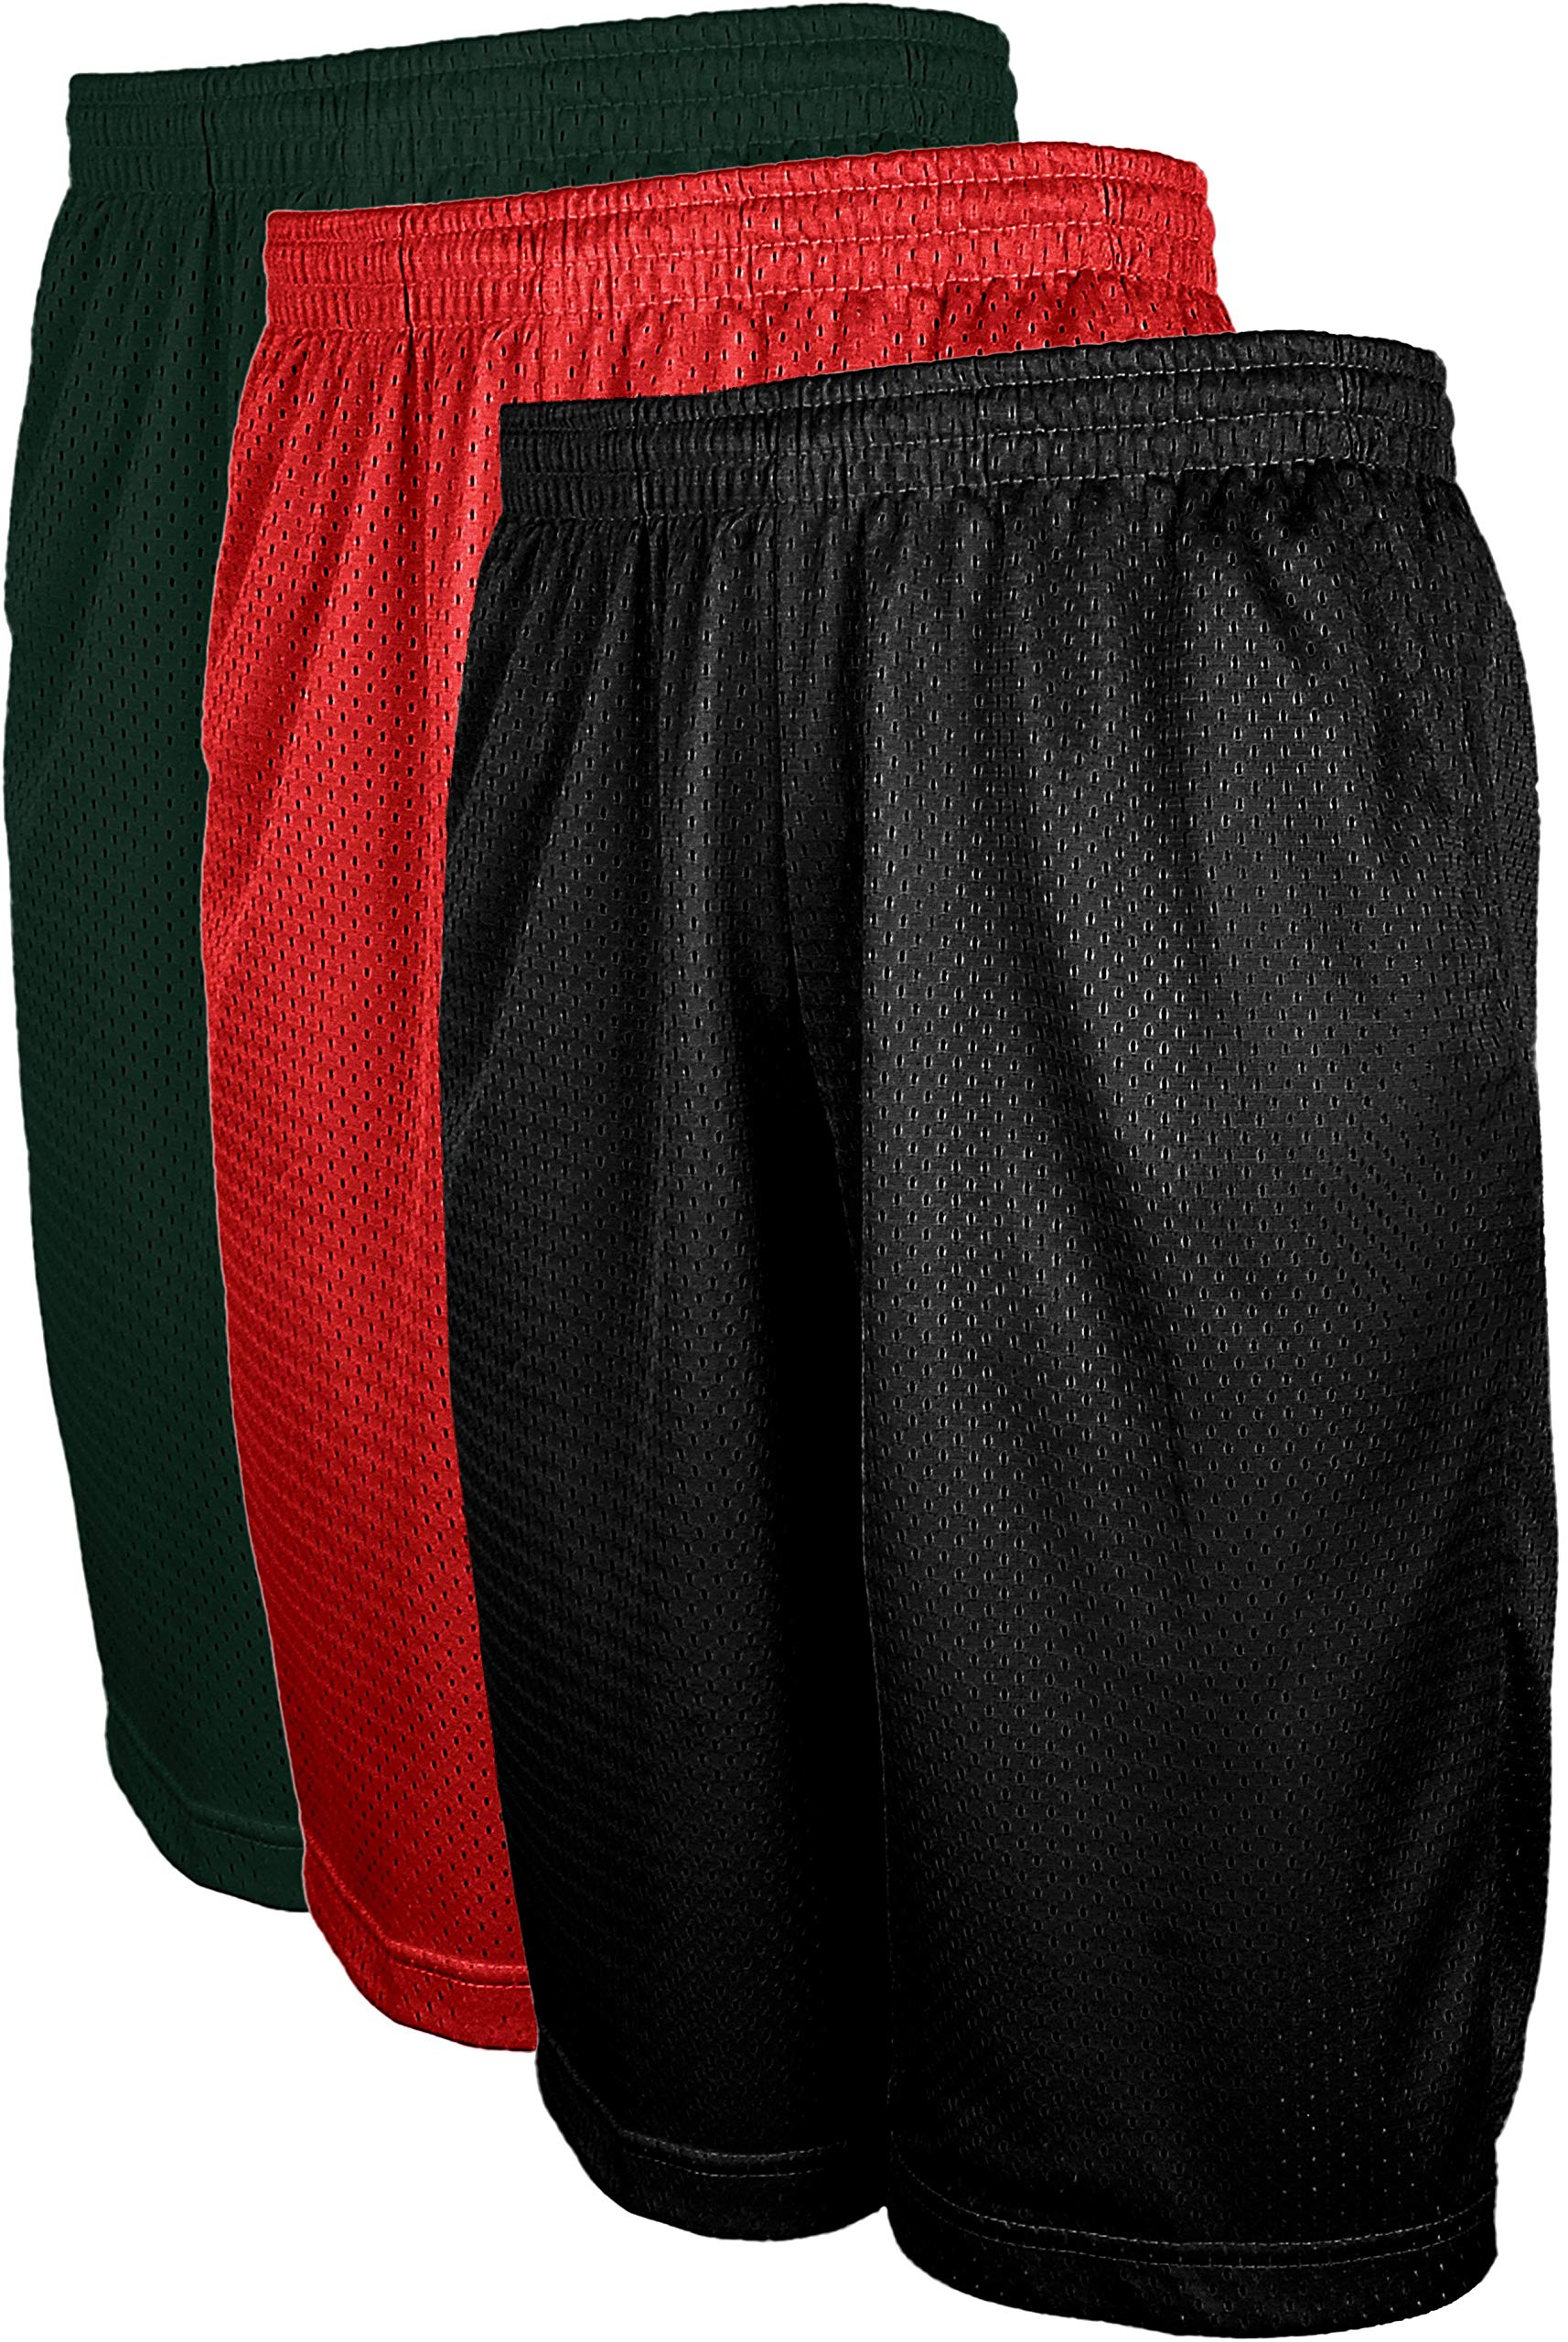 ViiViiKay Men's Athletic Basketball Shorts - Mesh Workout Gym Shorts with Pocket SET3_GRN_RED_BLK 2XL